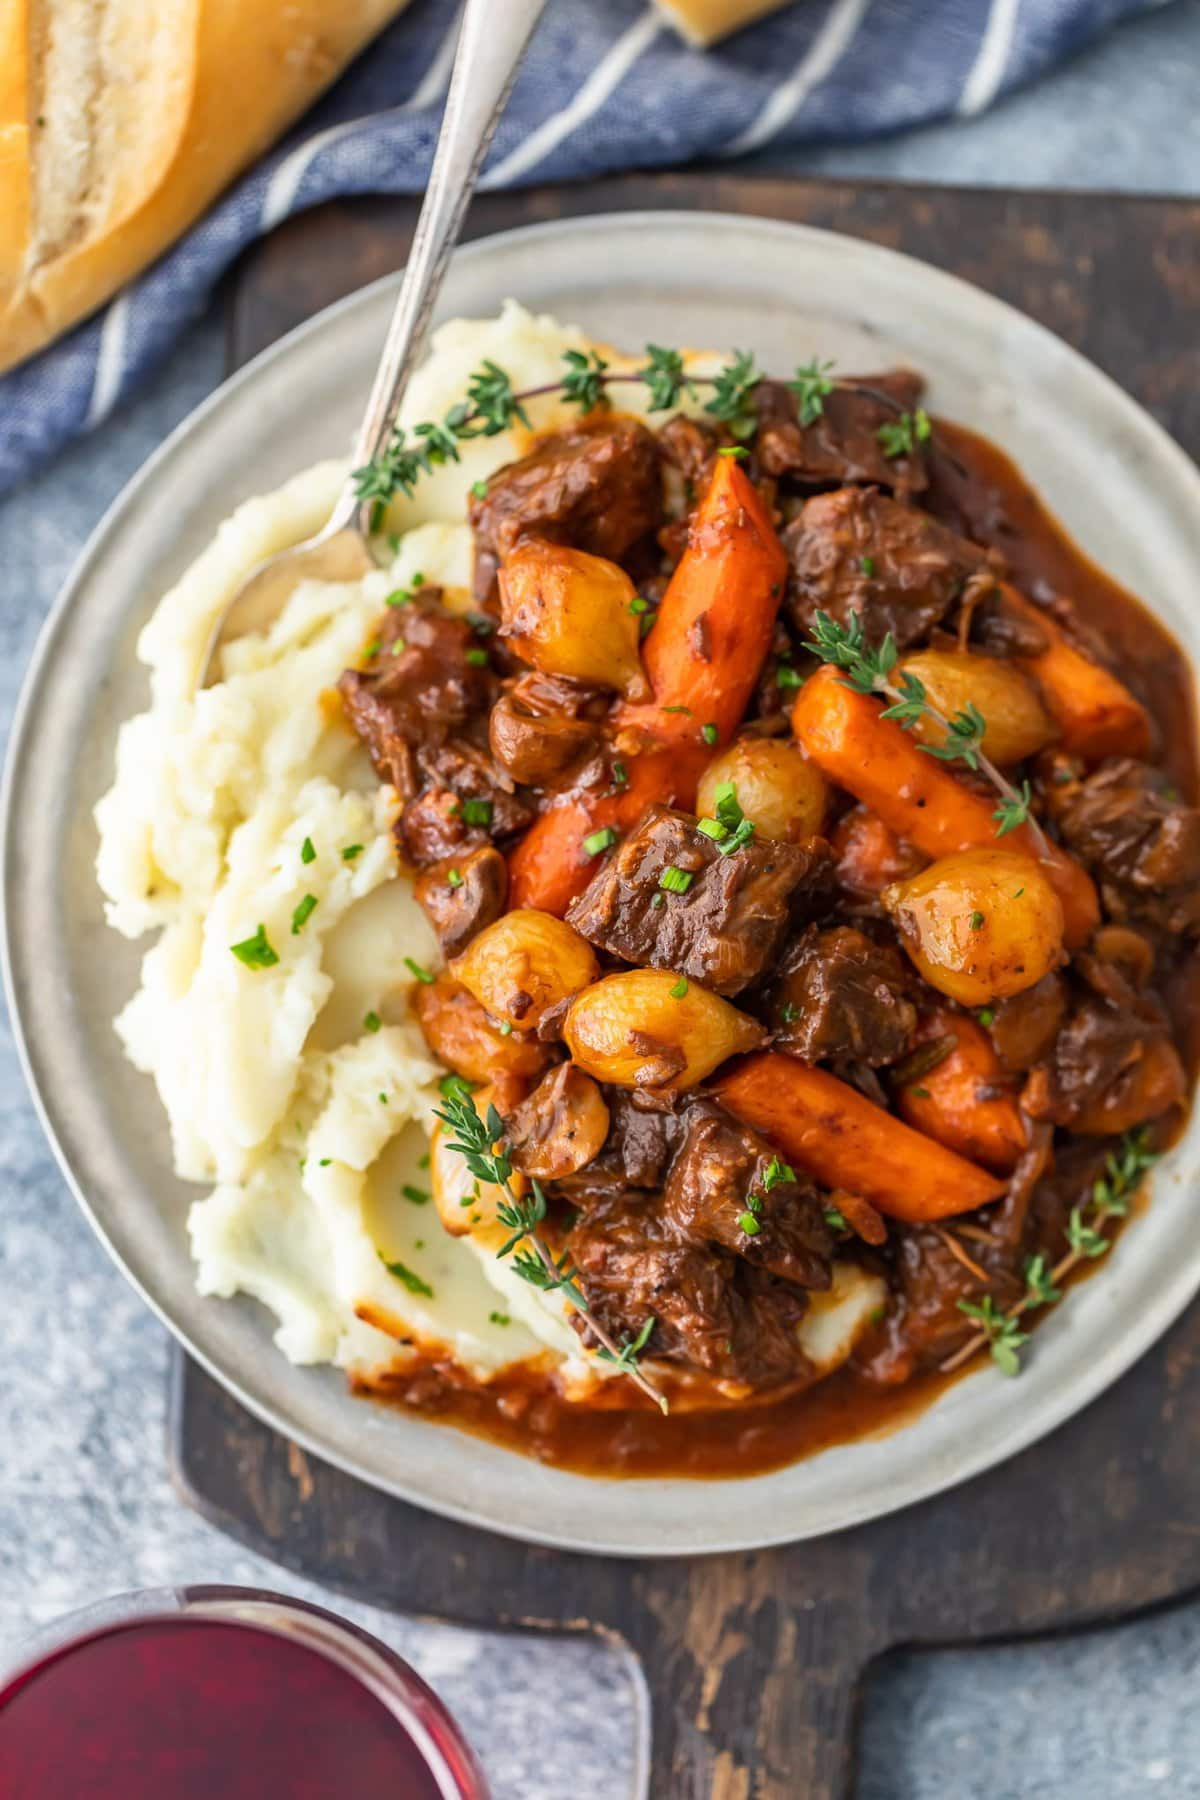 beef burgundy recipe on a plate with mashed potatoes